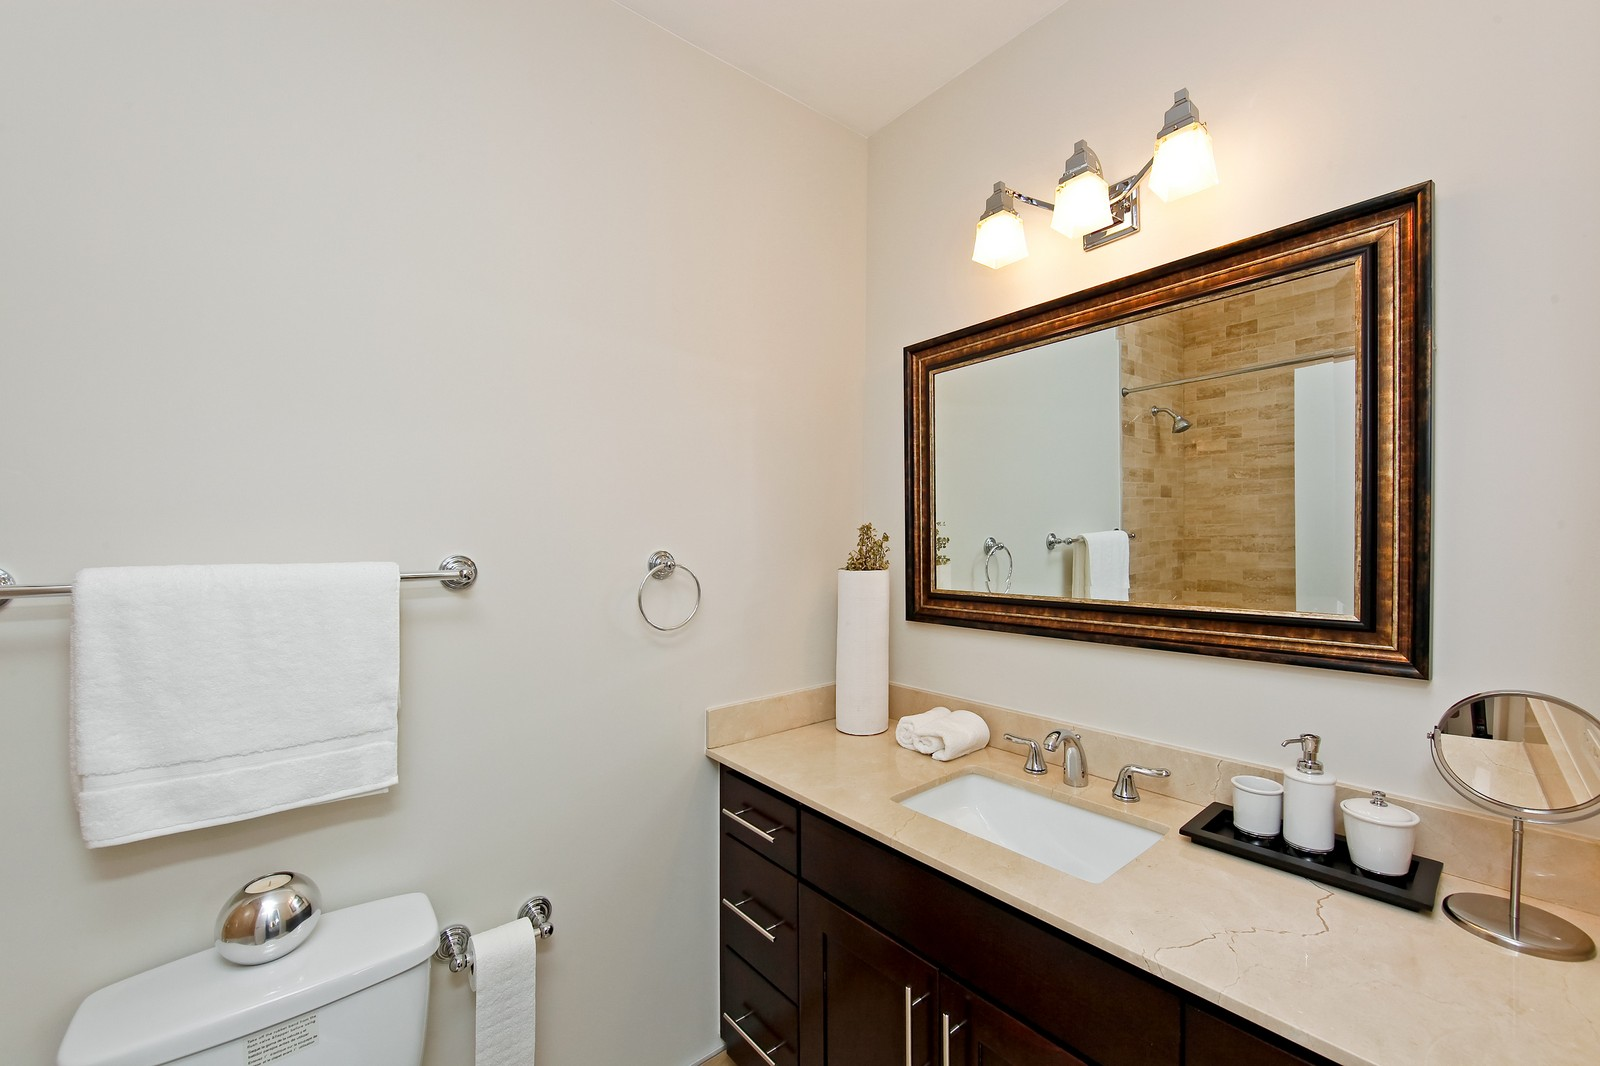 Real Estate Photography - 2422 W Bross, Chicago, IL, 60608 - Master Bathroom